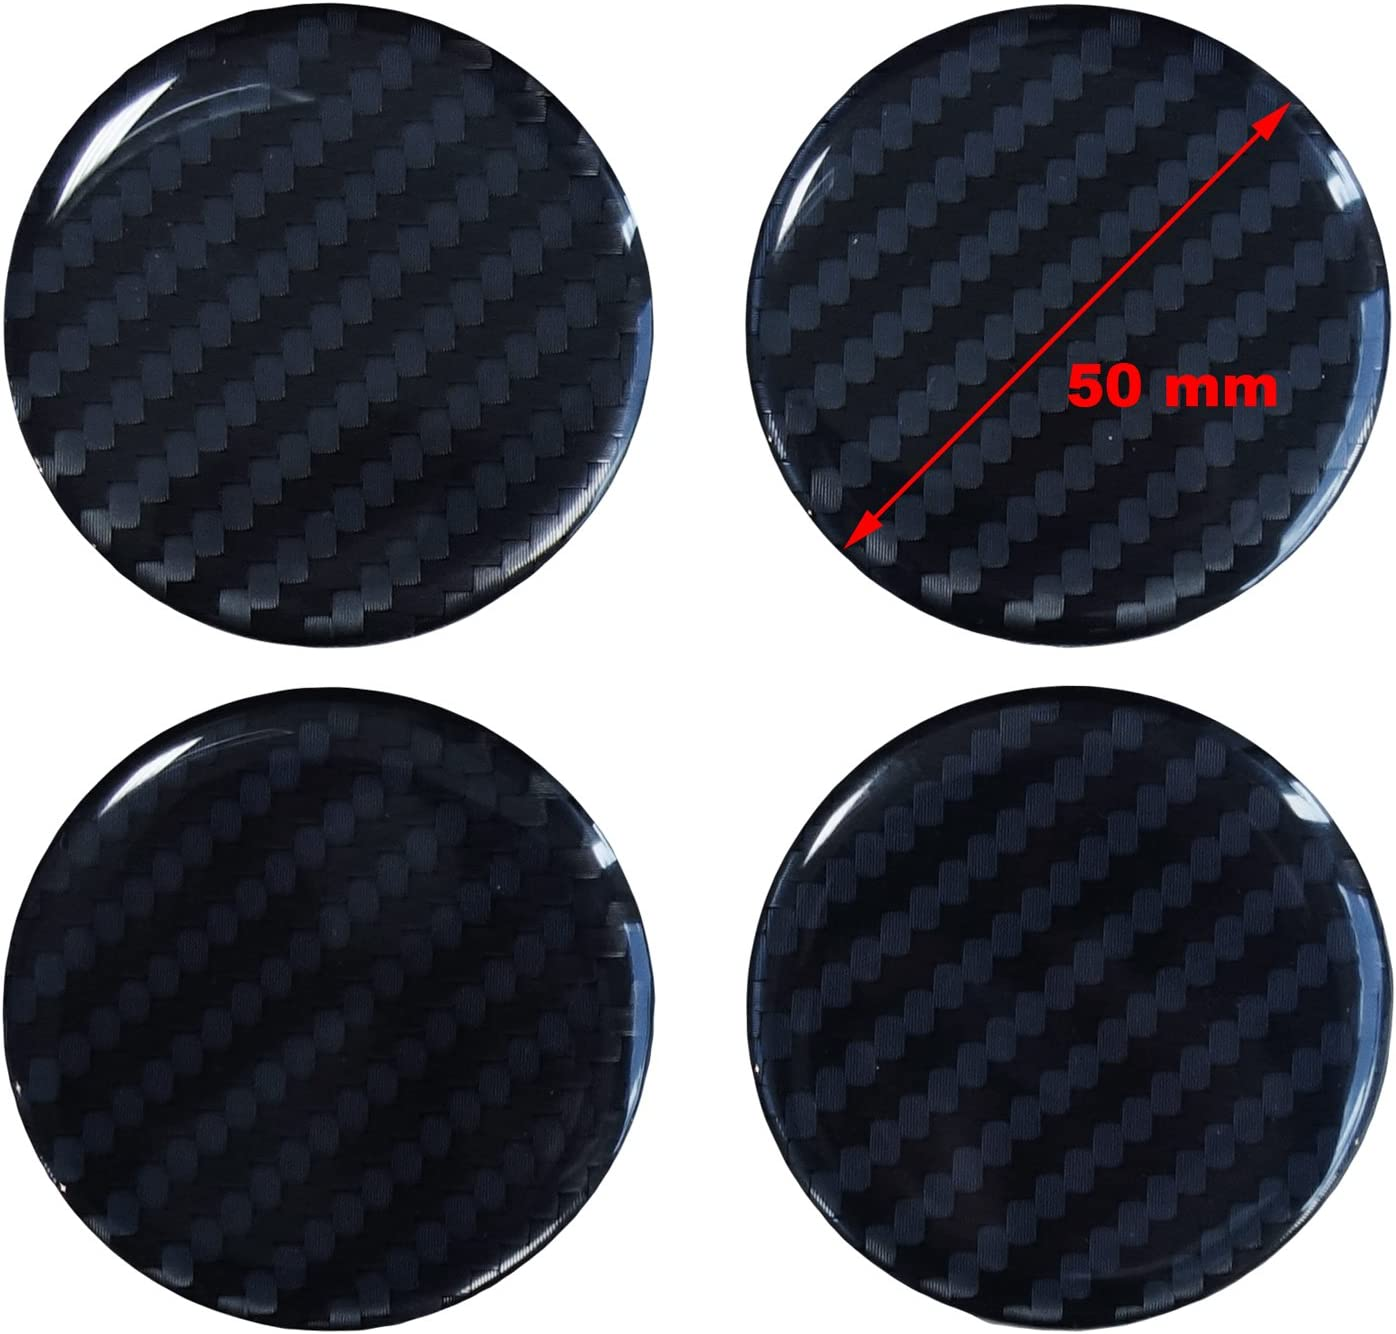 High-Tech Film with Visible Structure /910032/Carbon Black Alloy Wheel Centre Hub Cap//Cover 50/mm Hub Caps 3D/